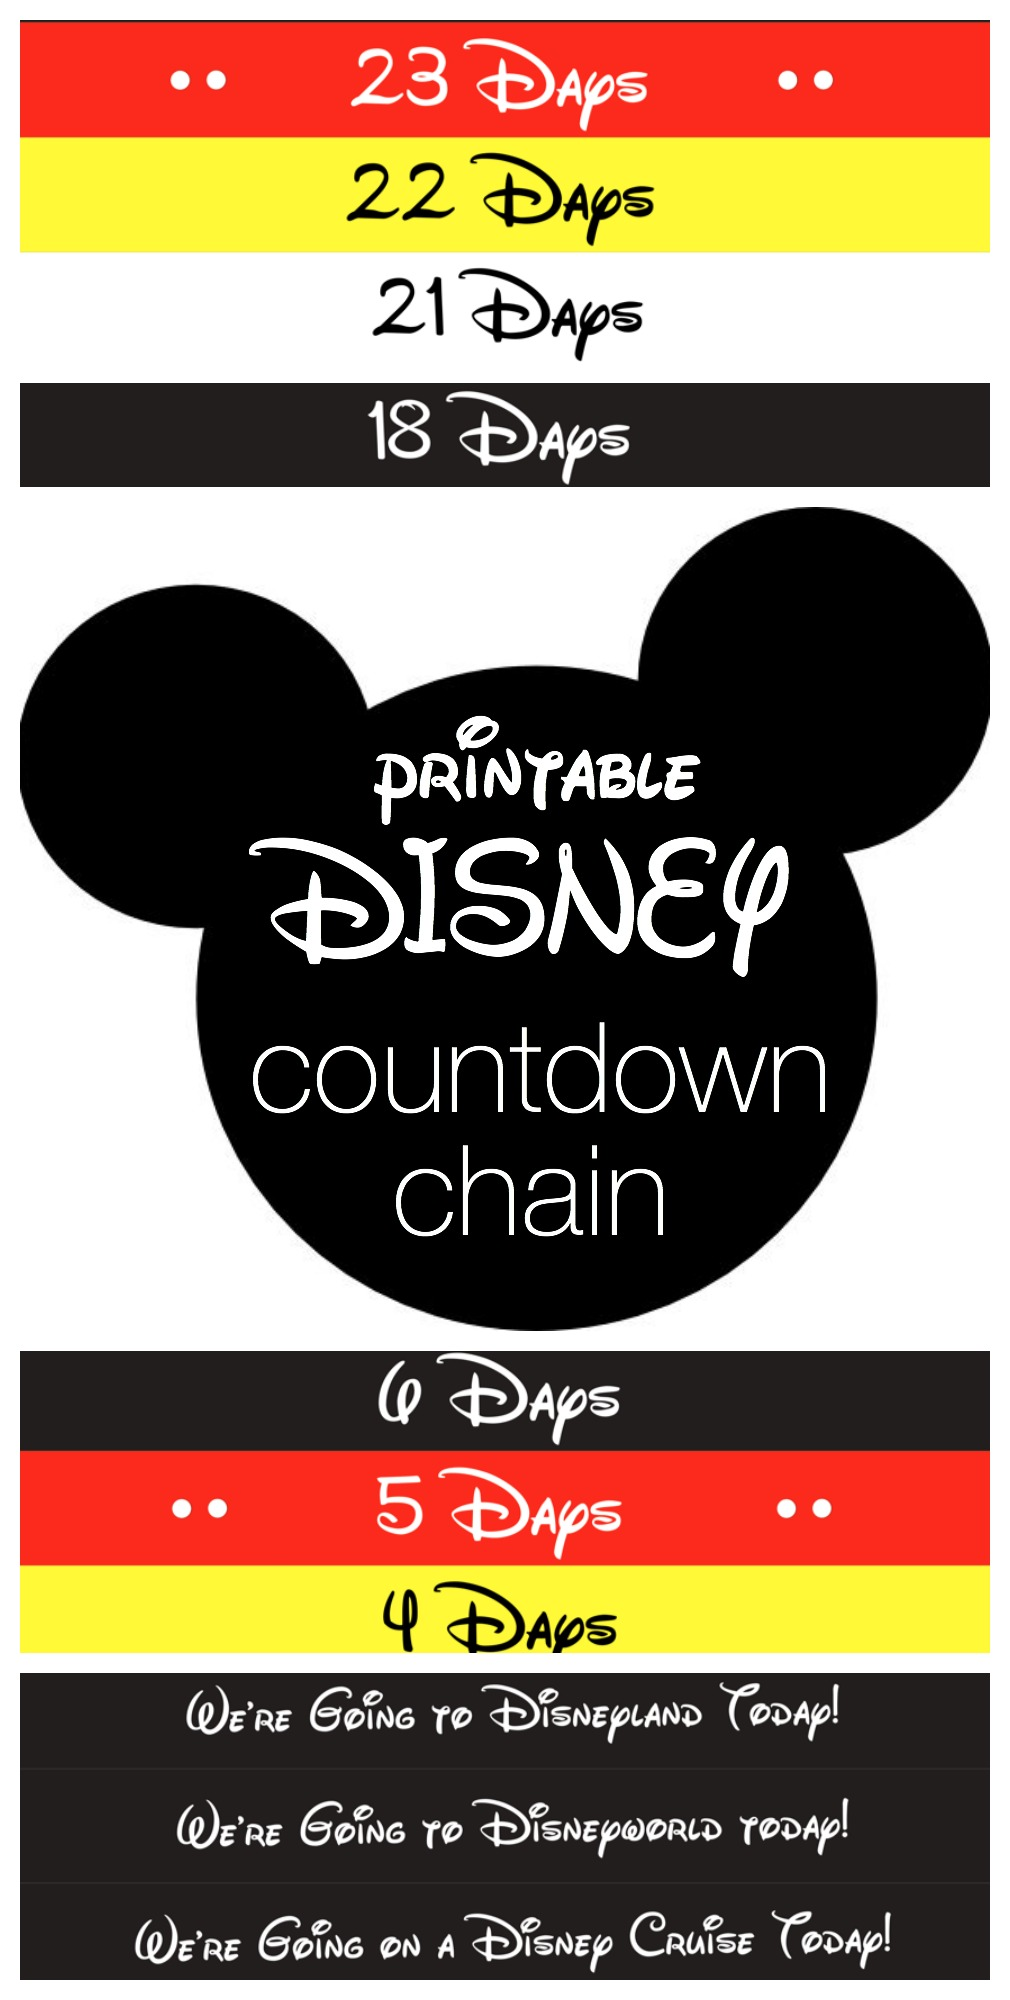 picture about Disney Countdown Printable named Disney Countdown Chain